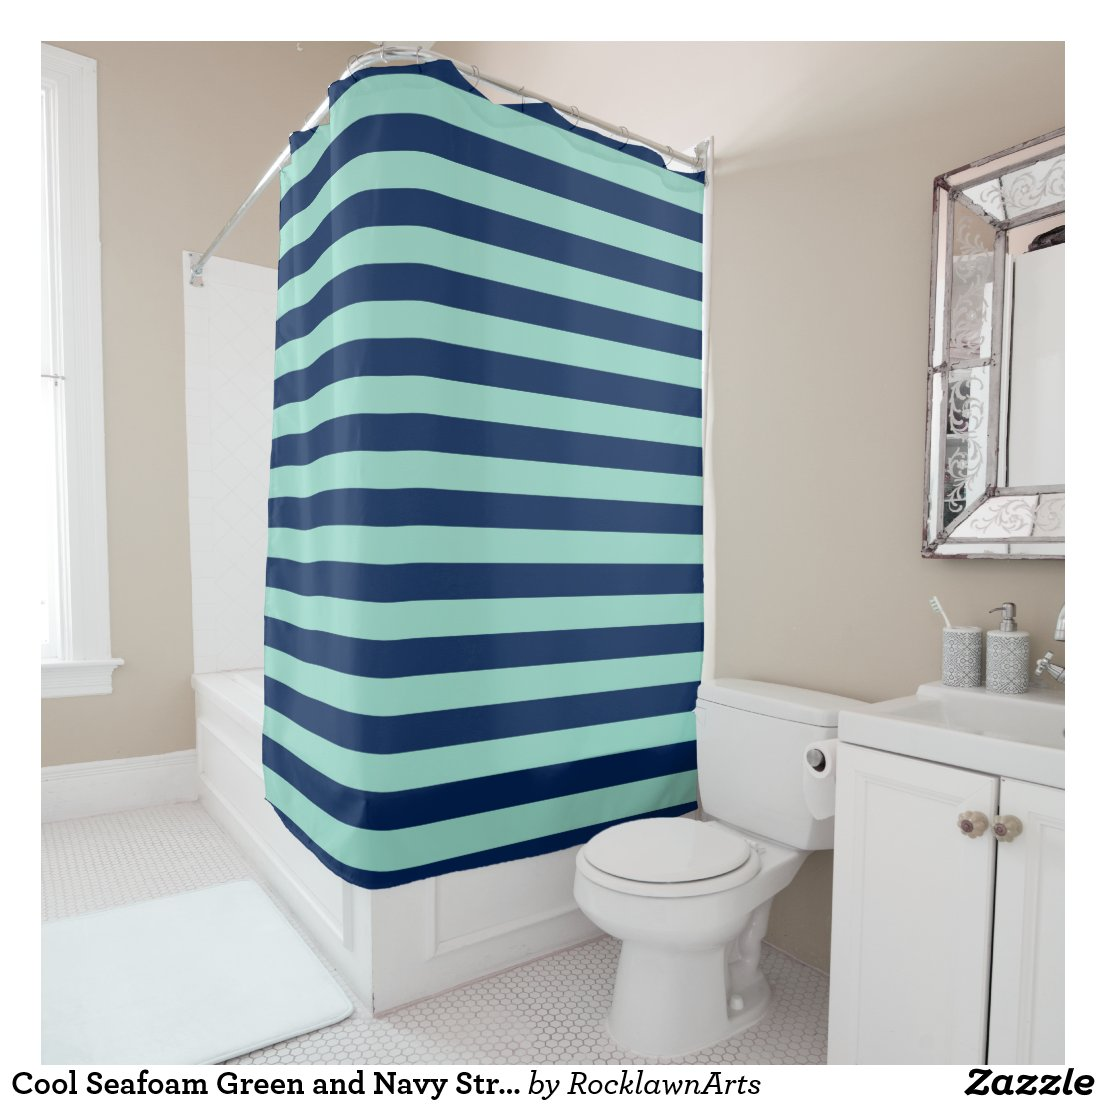 Cool Seafoam Green and Navy Stripes Shower Curtain